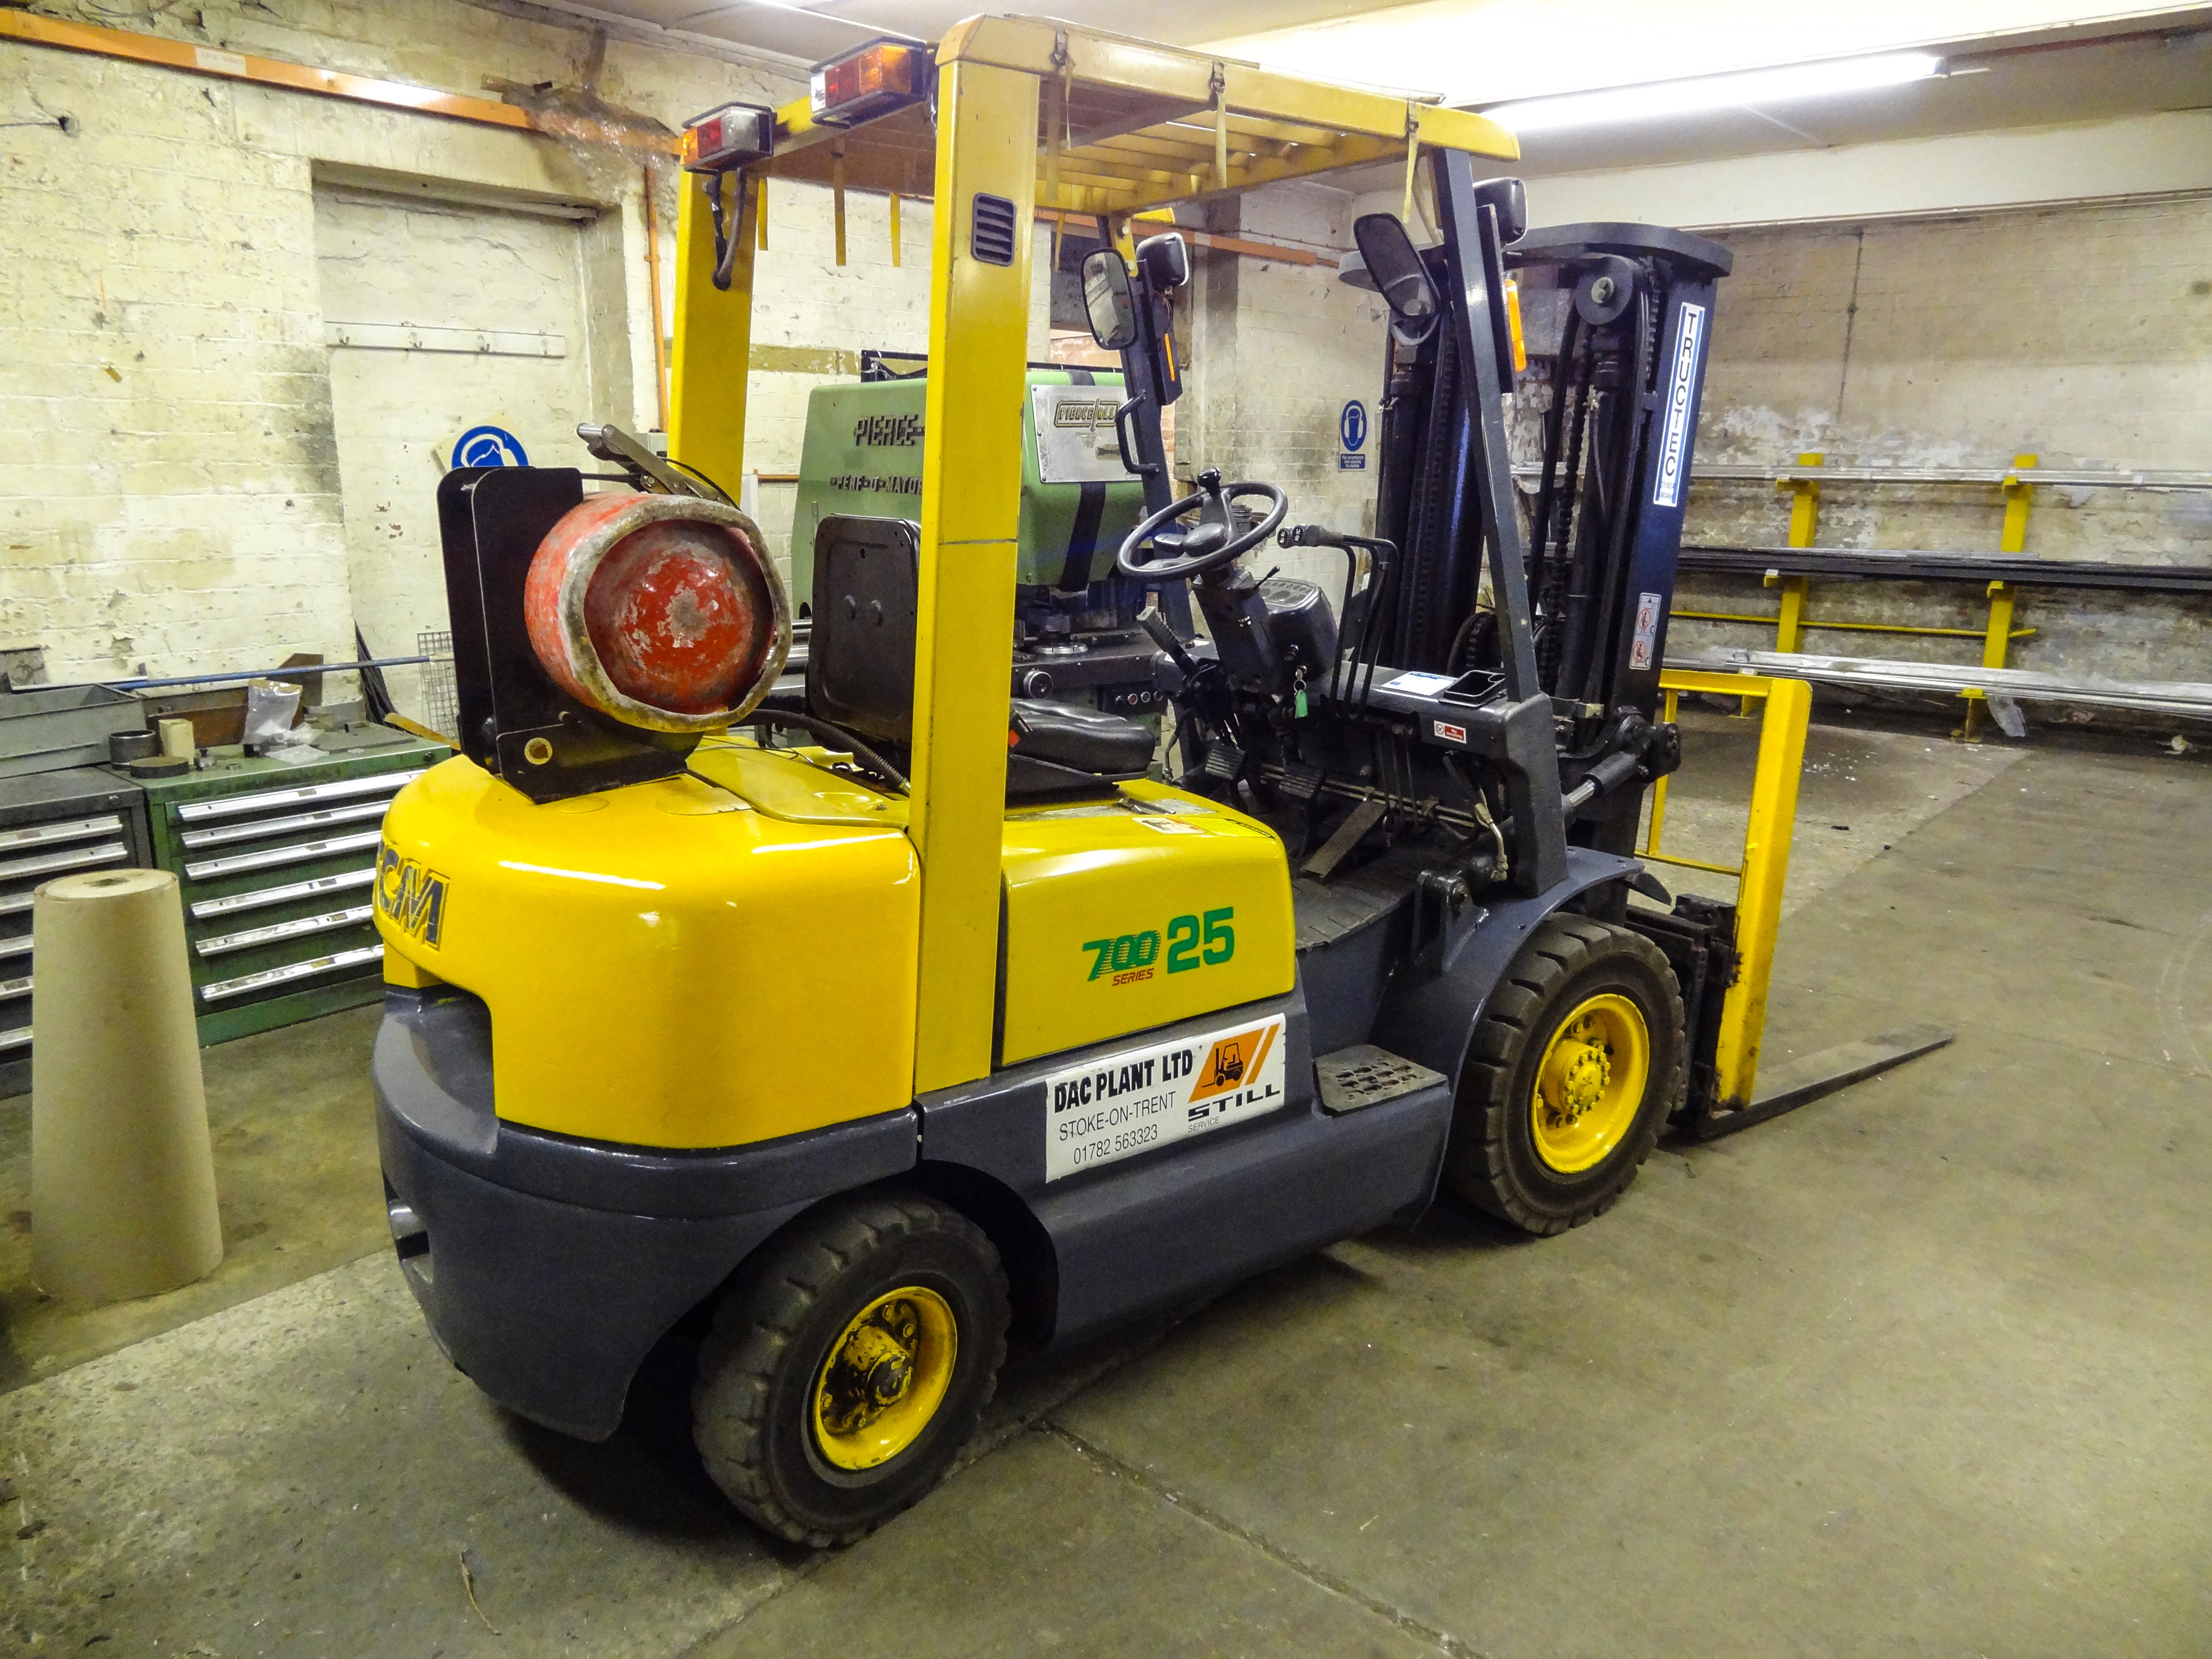 Lot 23 - TCM SERIES 700 25 2500kg LPG FORKLIFT TRUCK, year of manufacture  1998